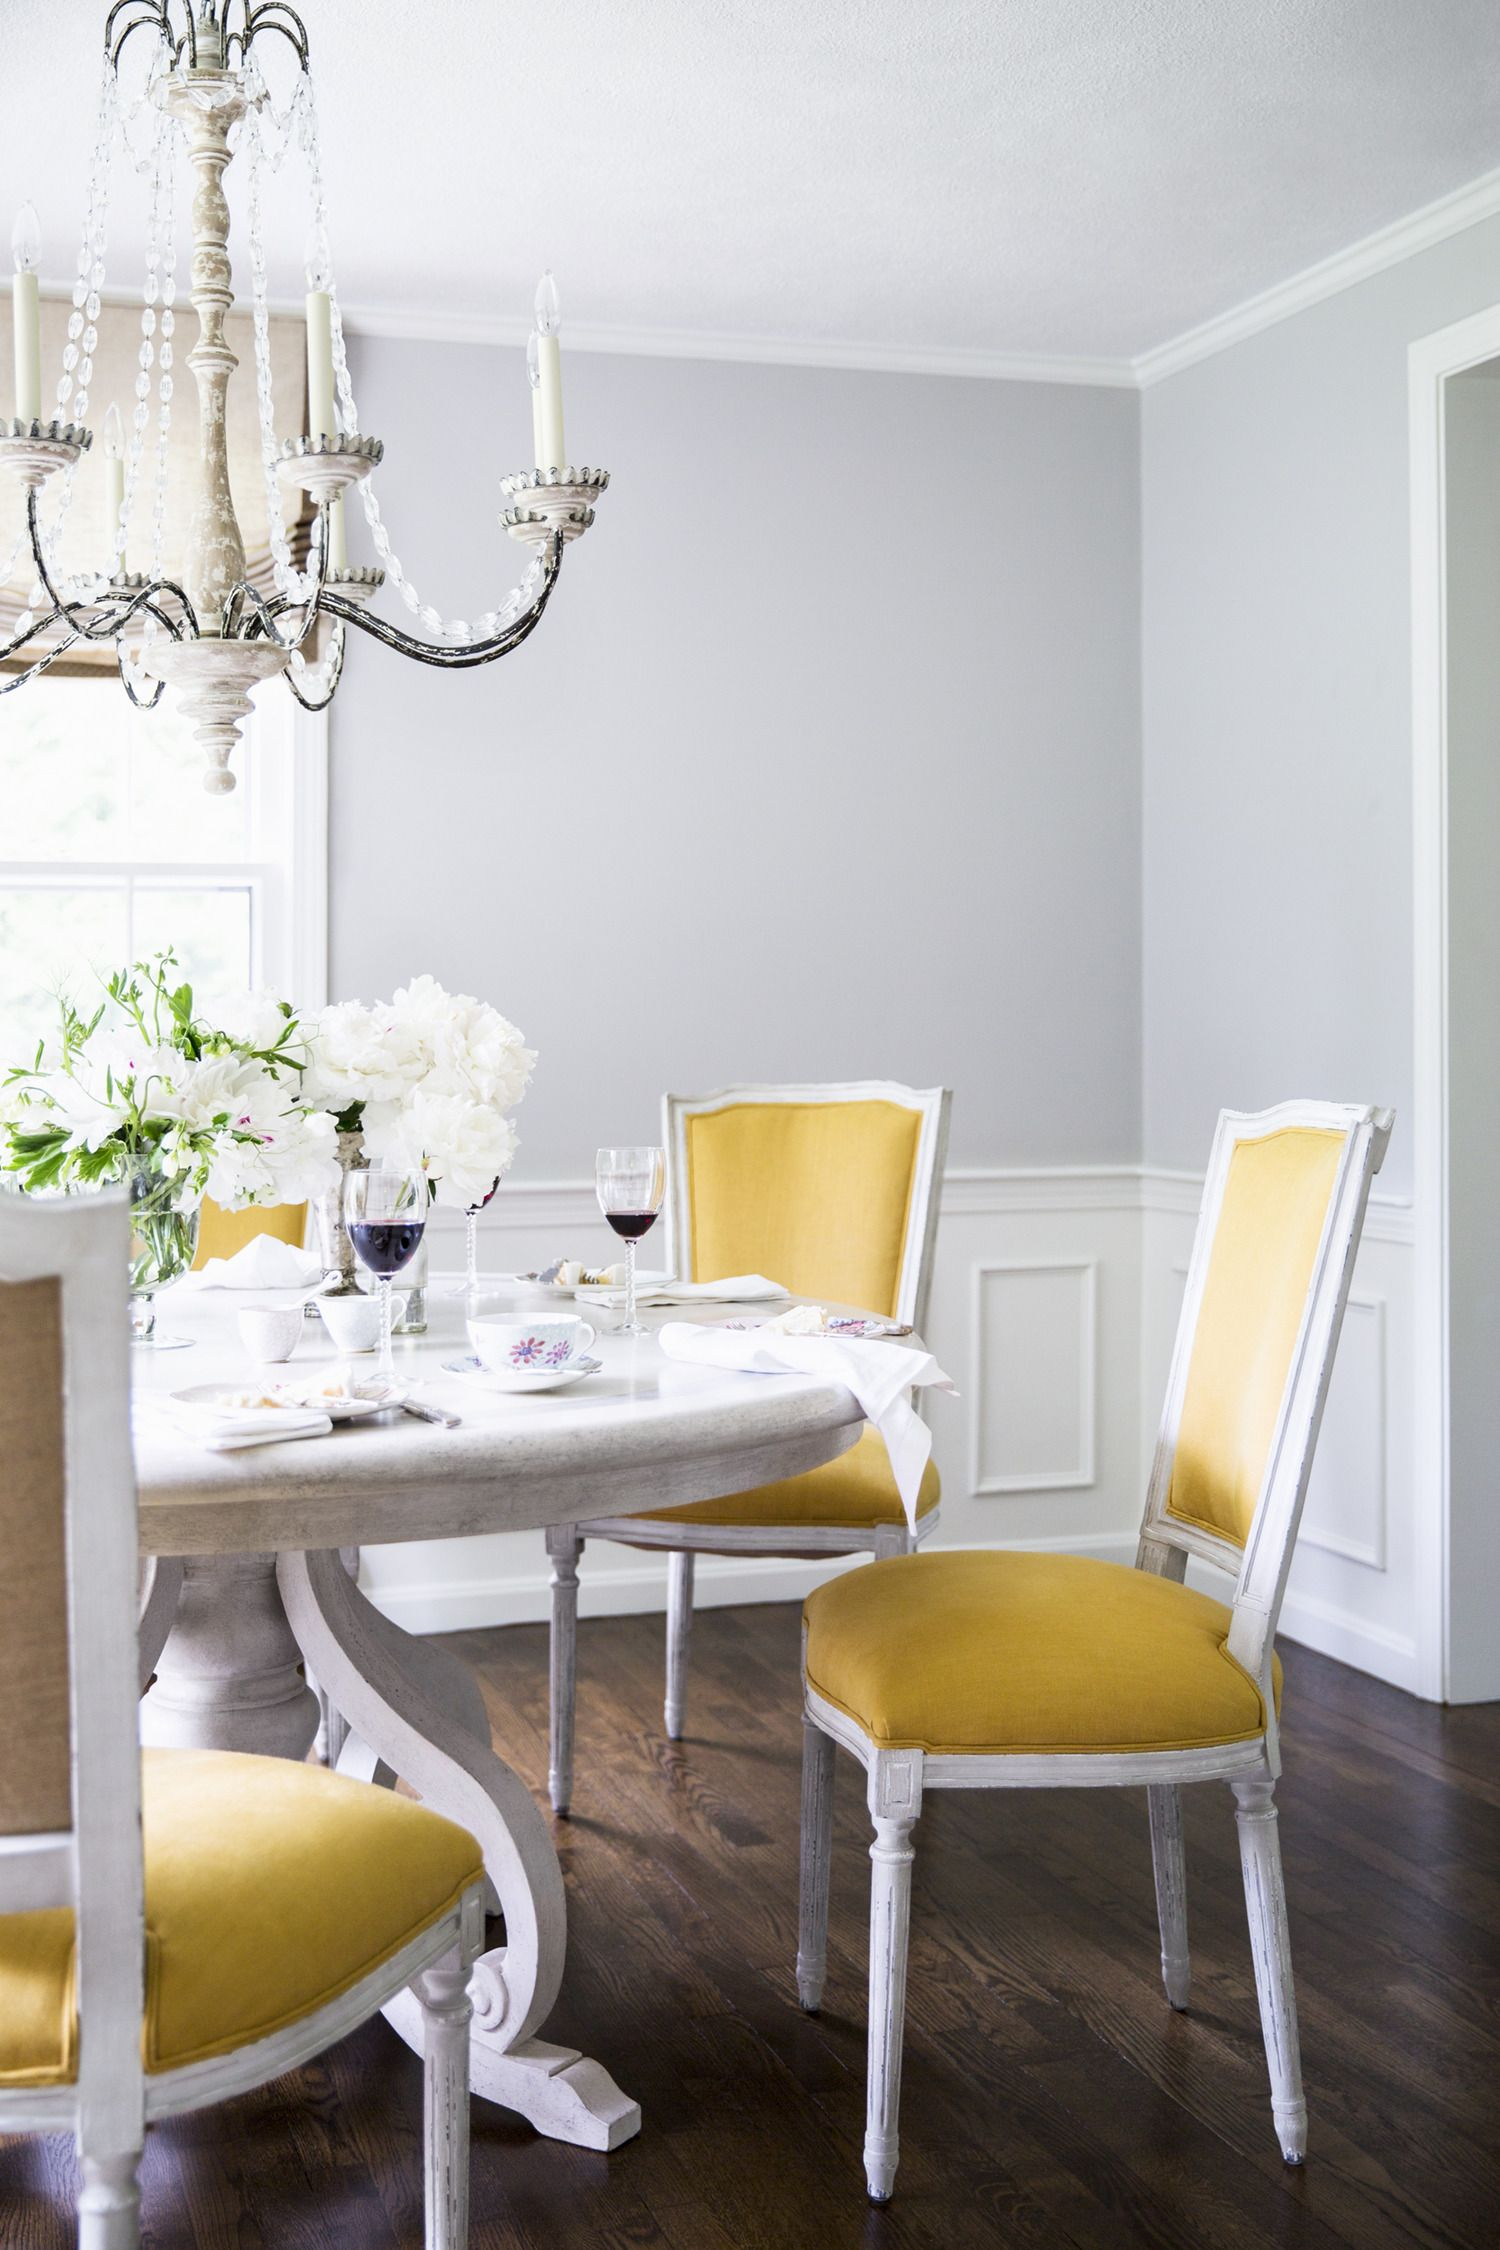 chair pict sxs room want dining if for in dark and mustard bernhard ideas yellow chairs inspiration add amazing to you